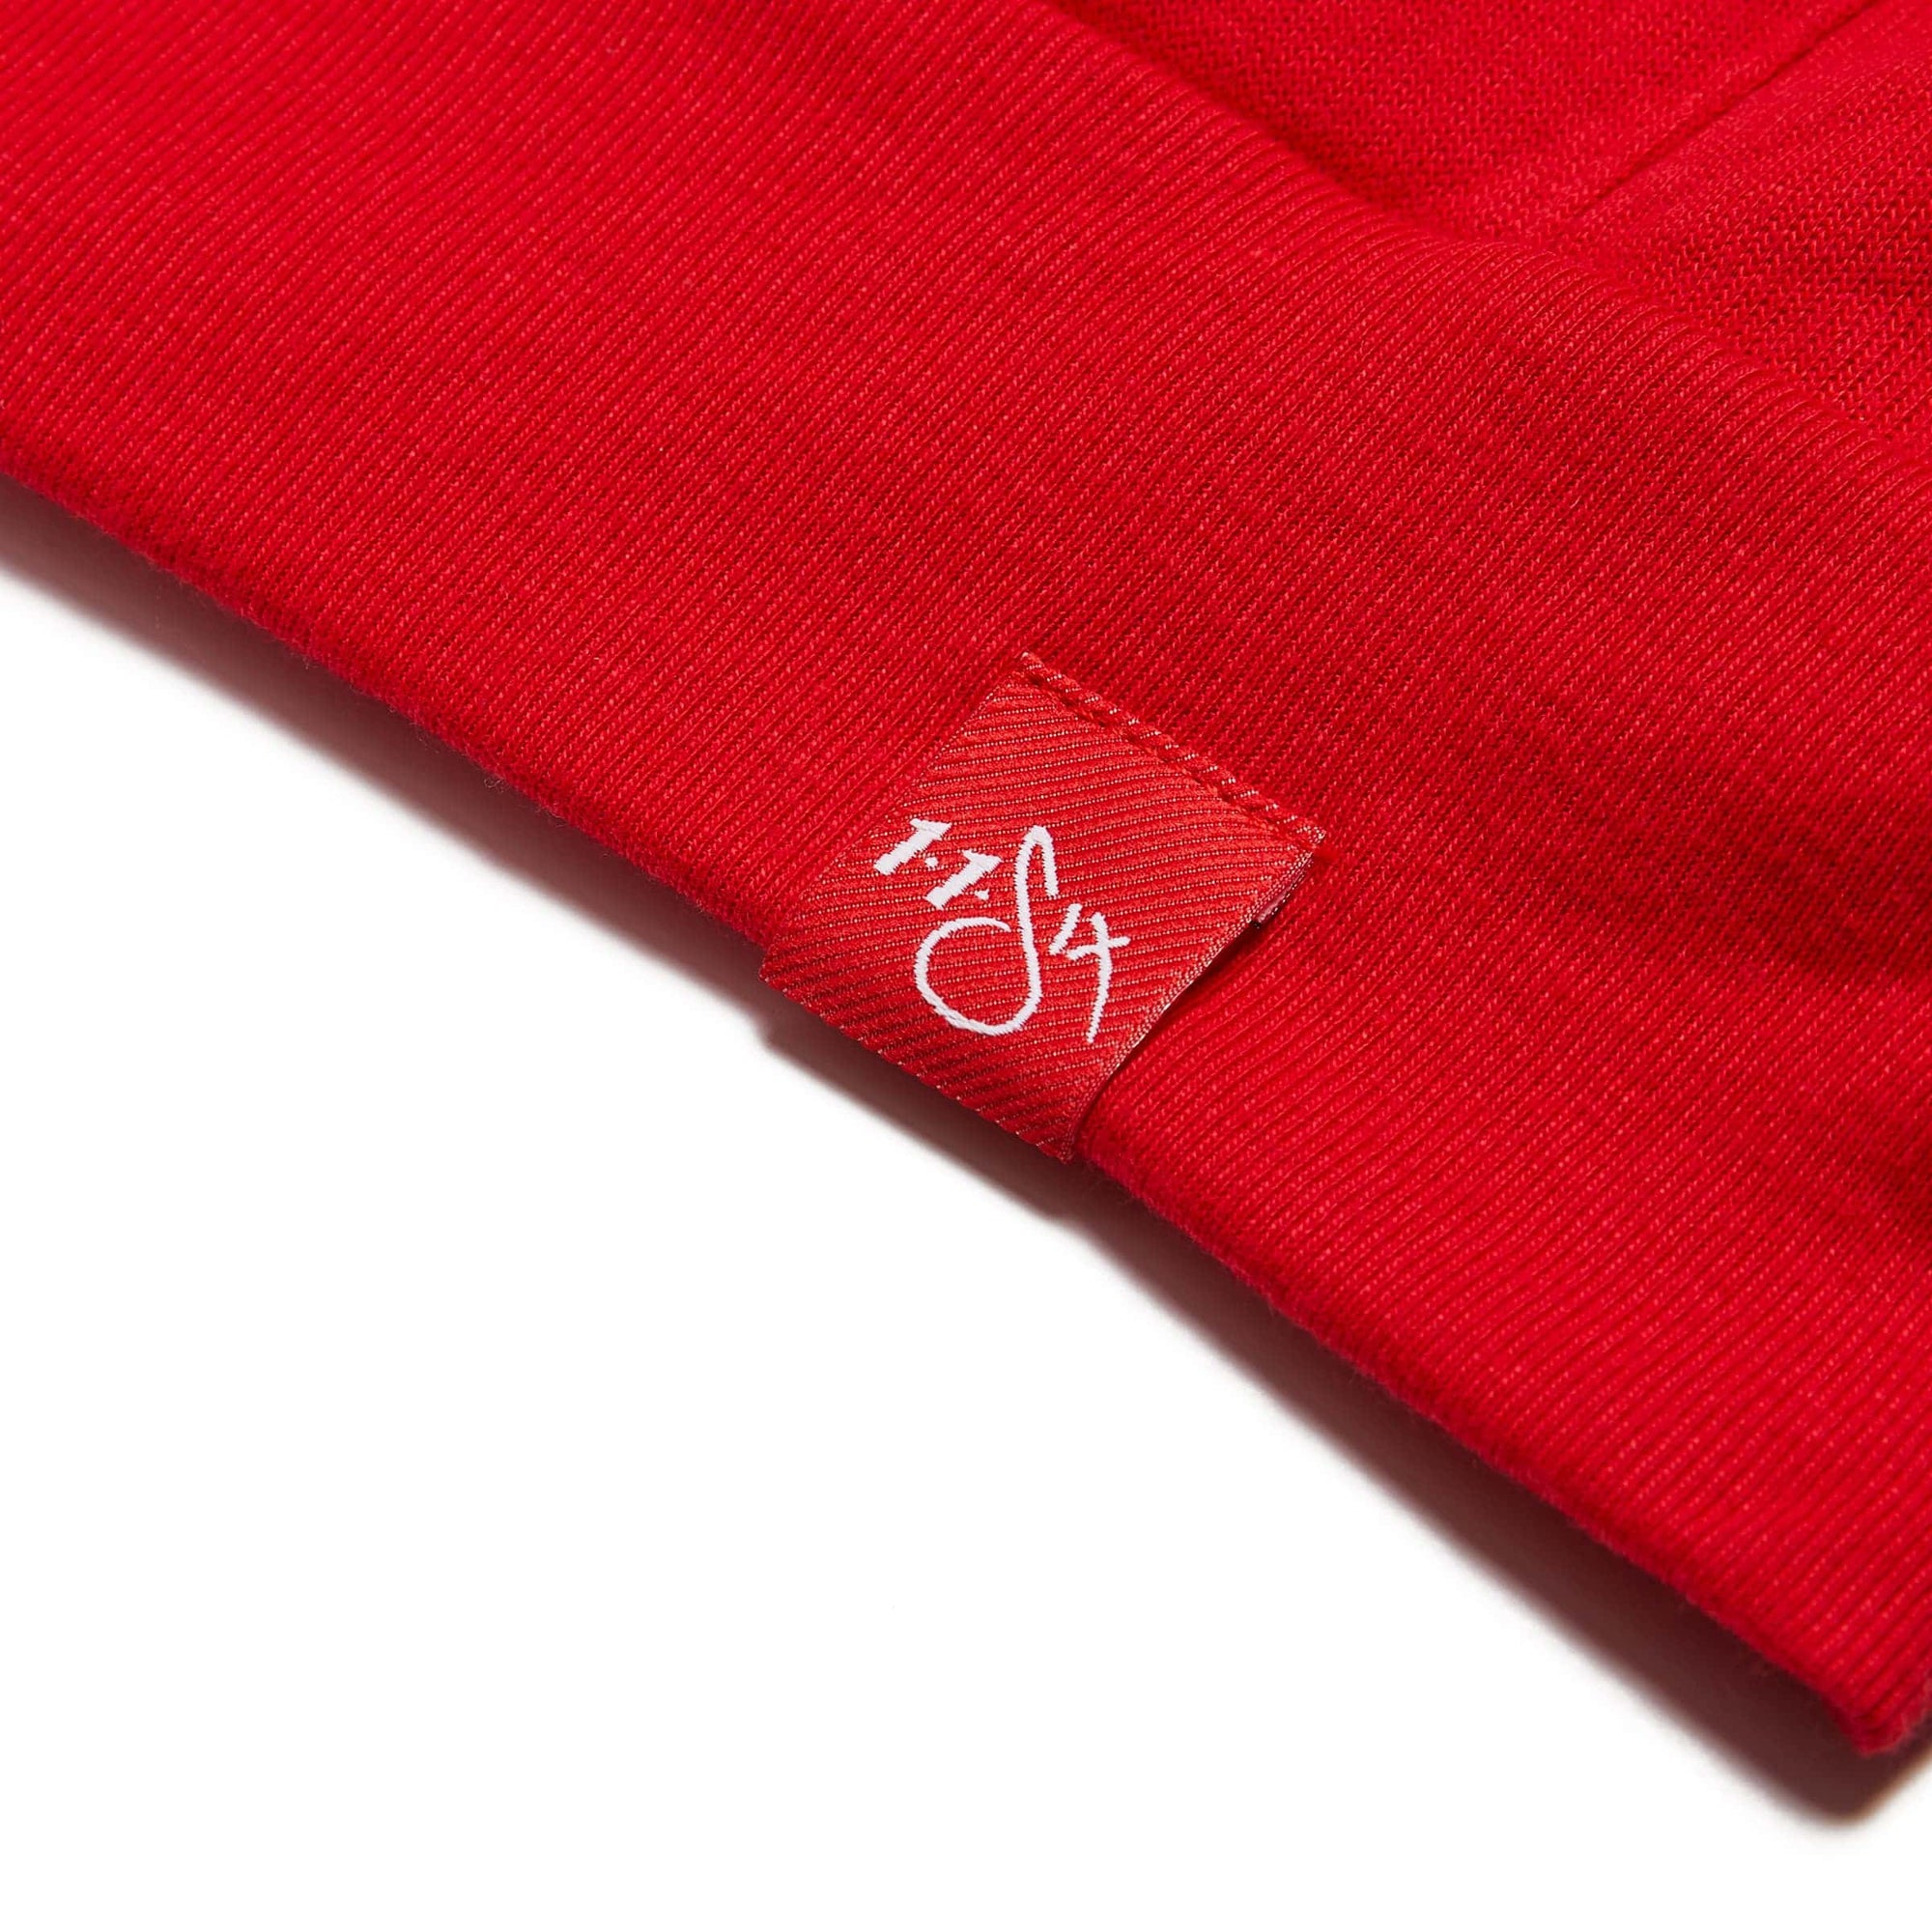 116 'Red Label' Pullover Hoodie - Red